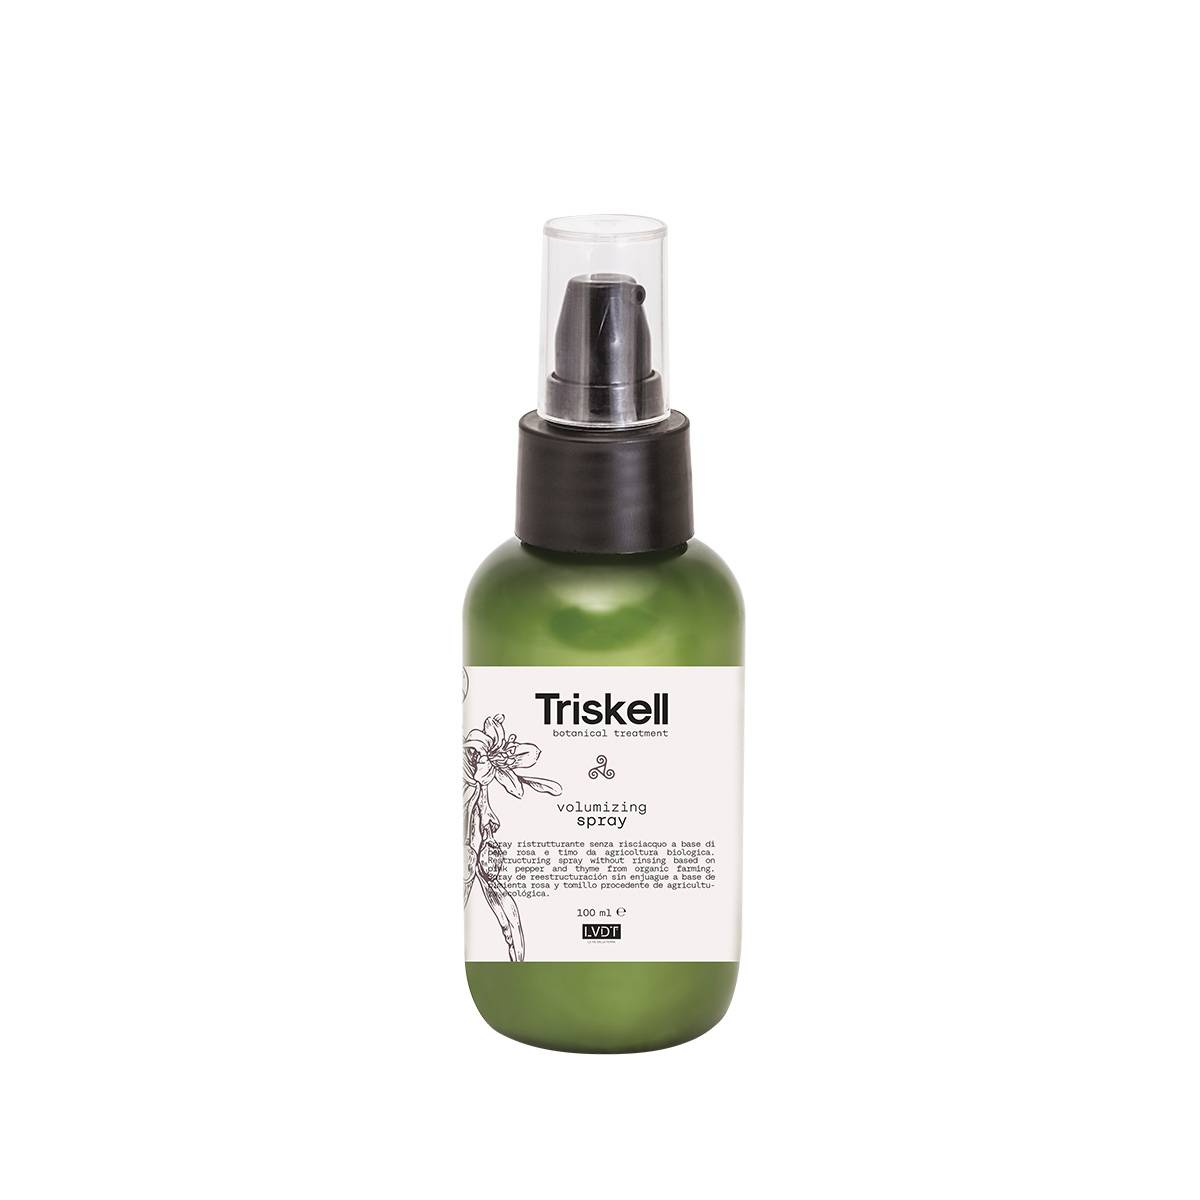 Volumizing Spray 100ml Triskell Botanical Treatment